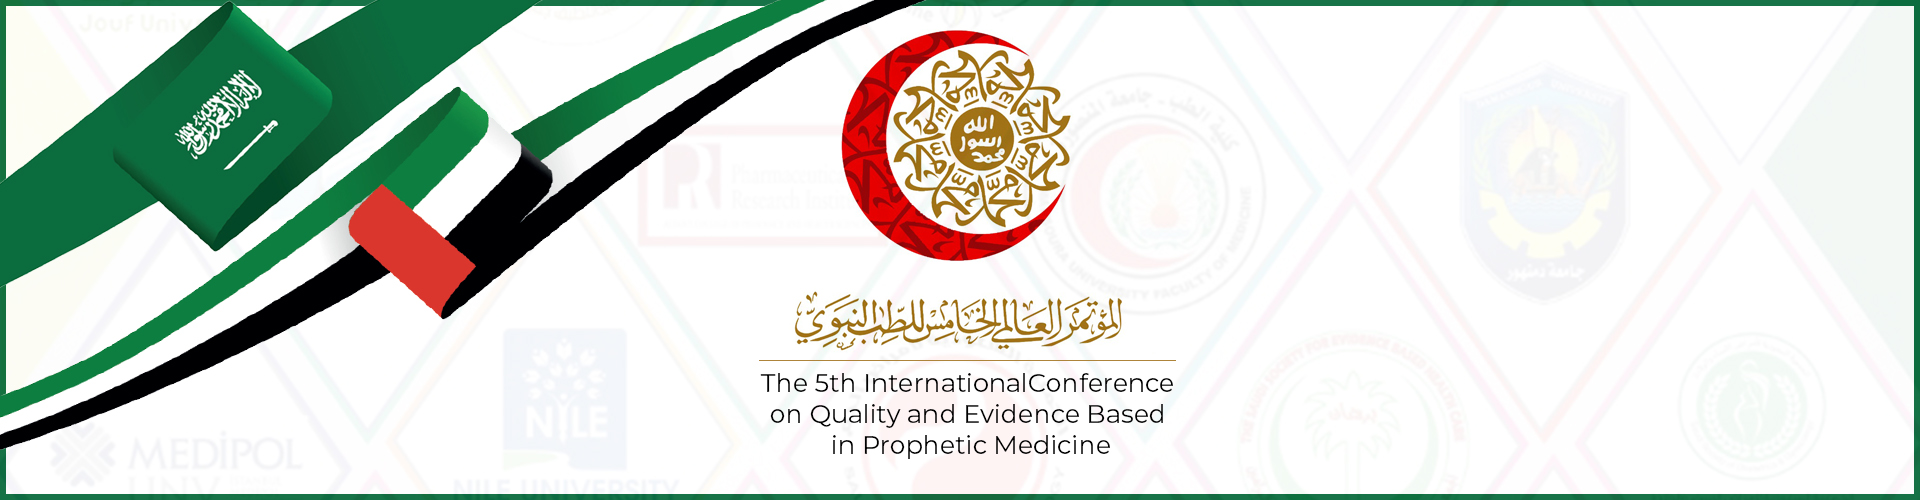 The 5th International Conference on Quality and Evidence Based in Prophetic Medicine